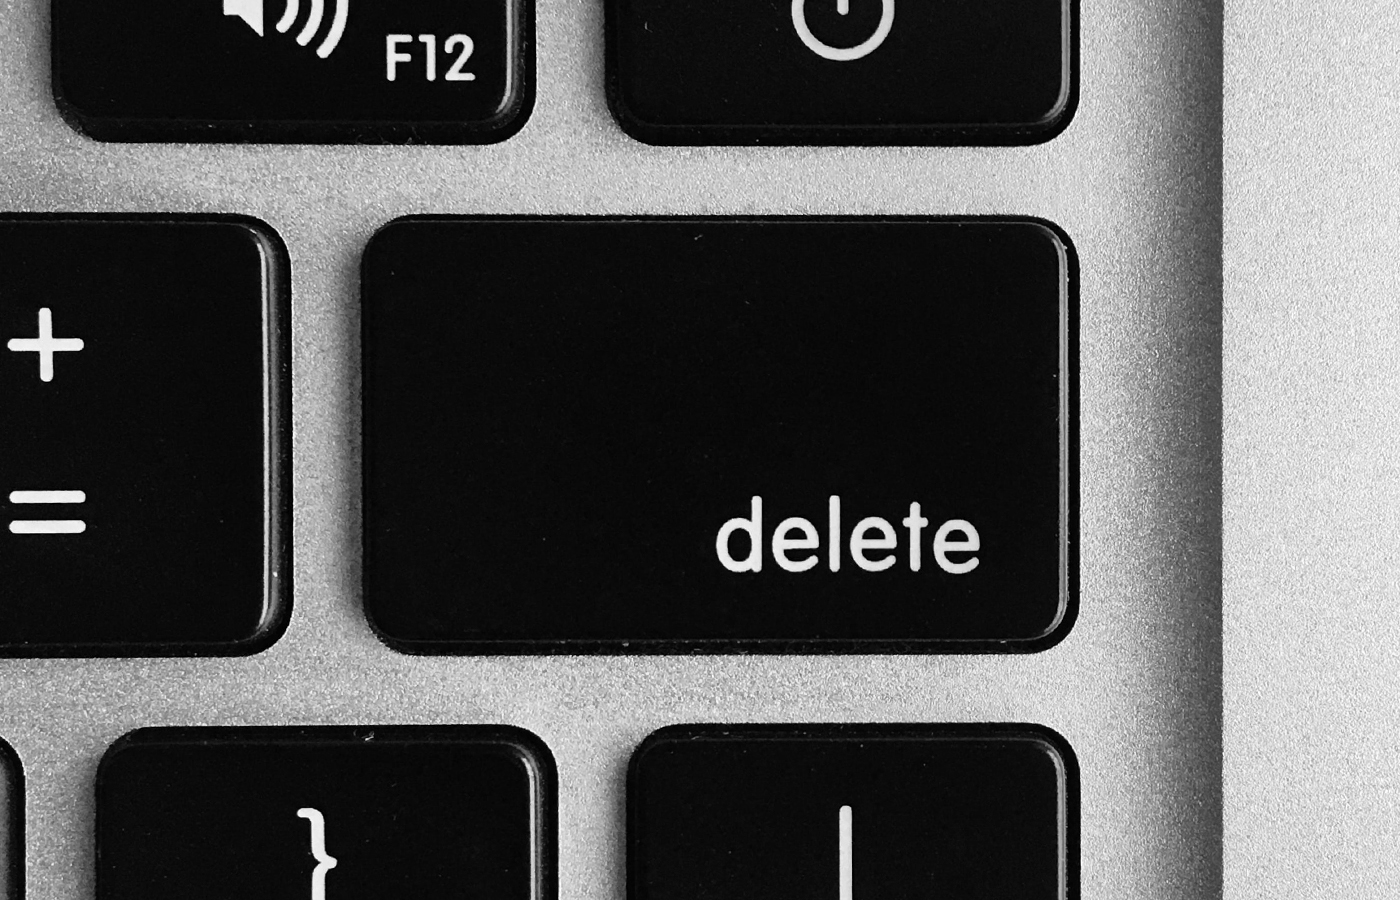 What if You Could Delete Your Problems?